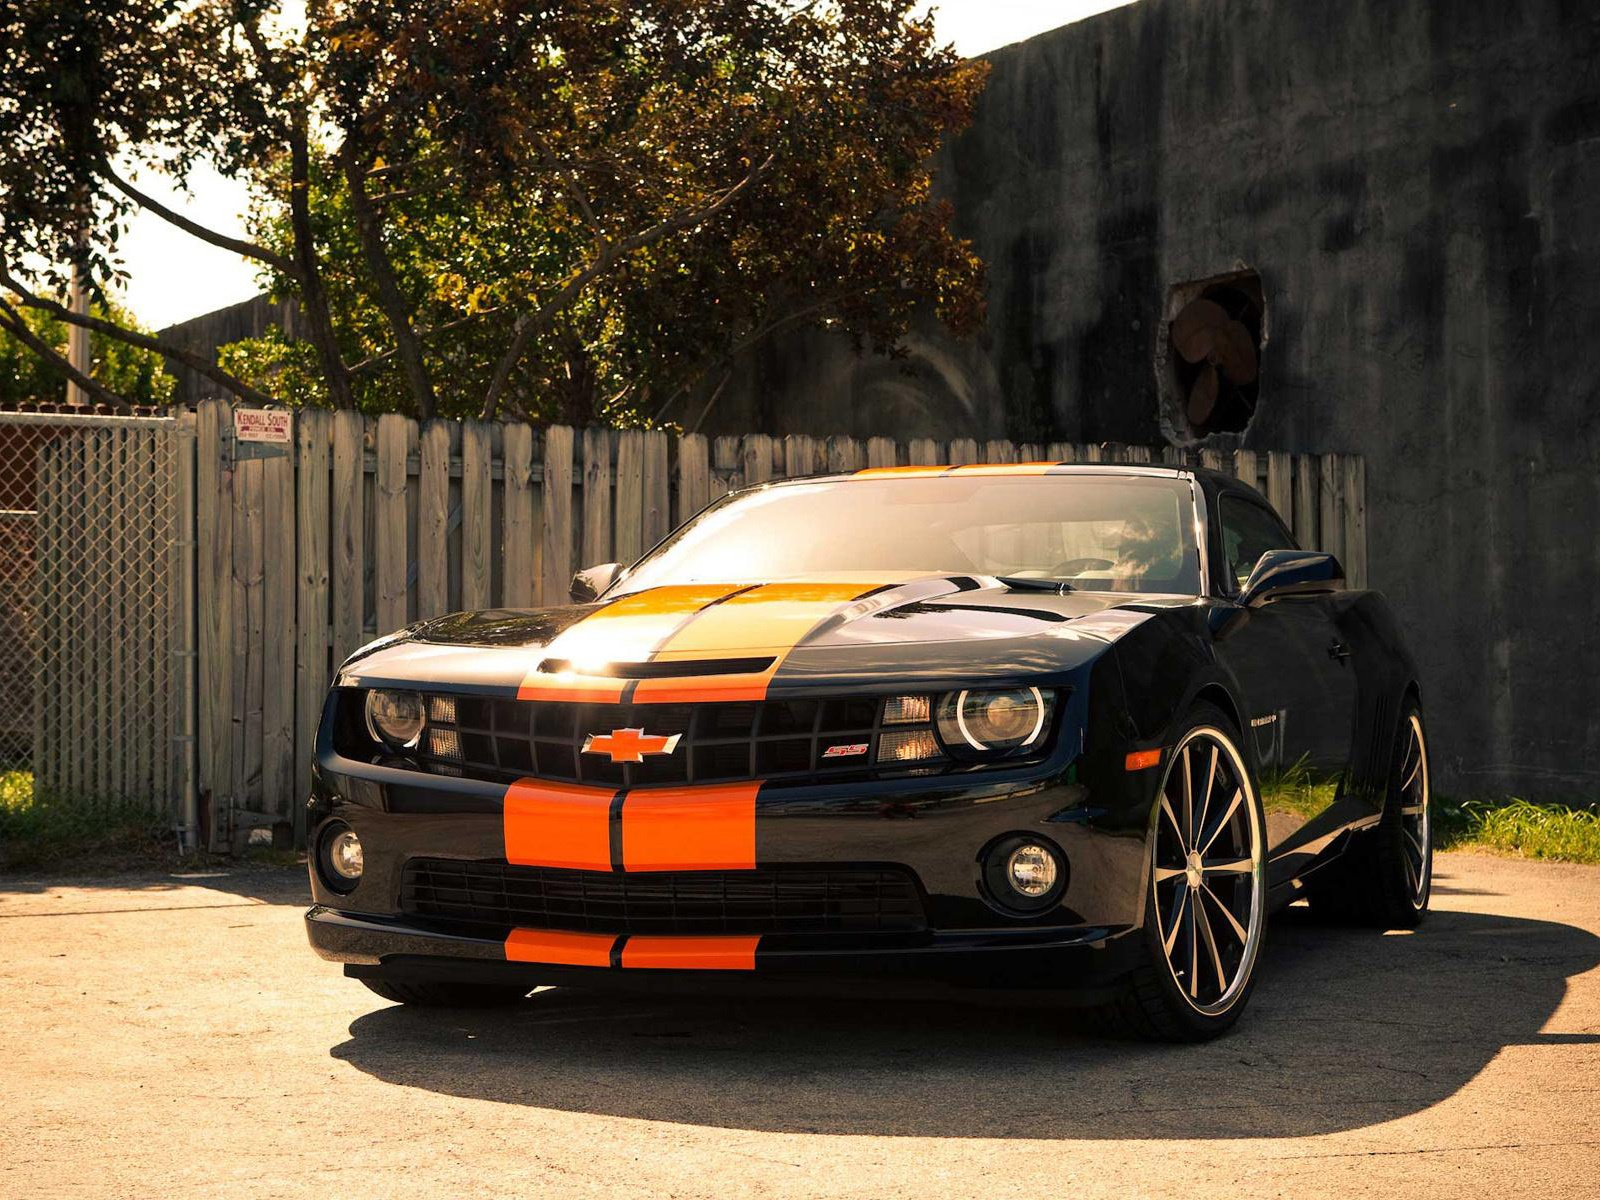 Chevrolet Camaro SS Car Wallpapers in jpg format for free